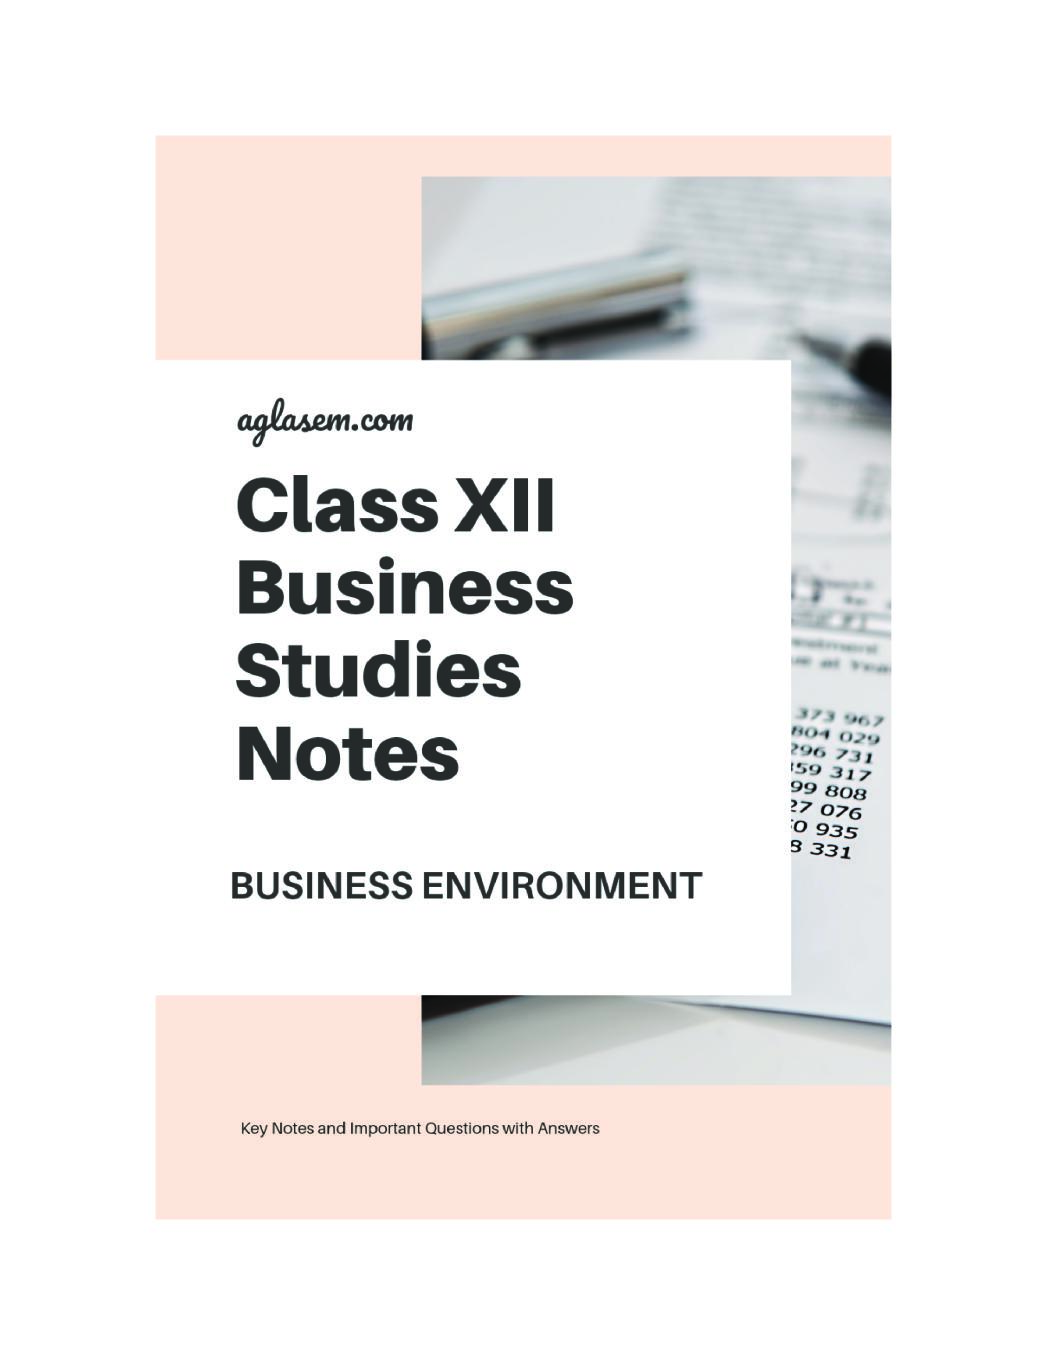 Class 12 Business Studies Notes for Business Environment